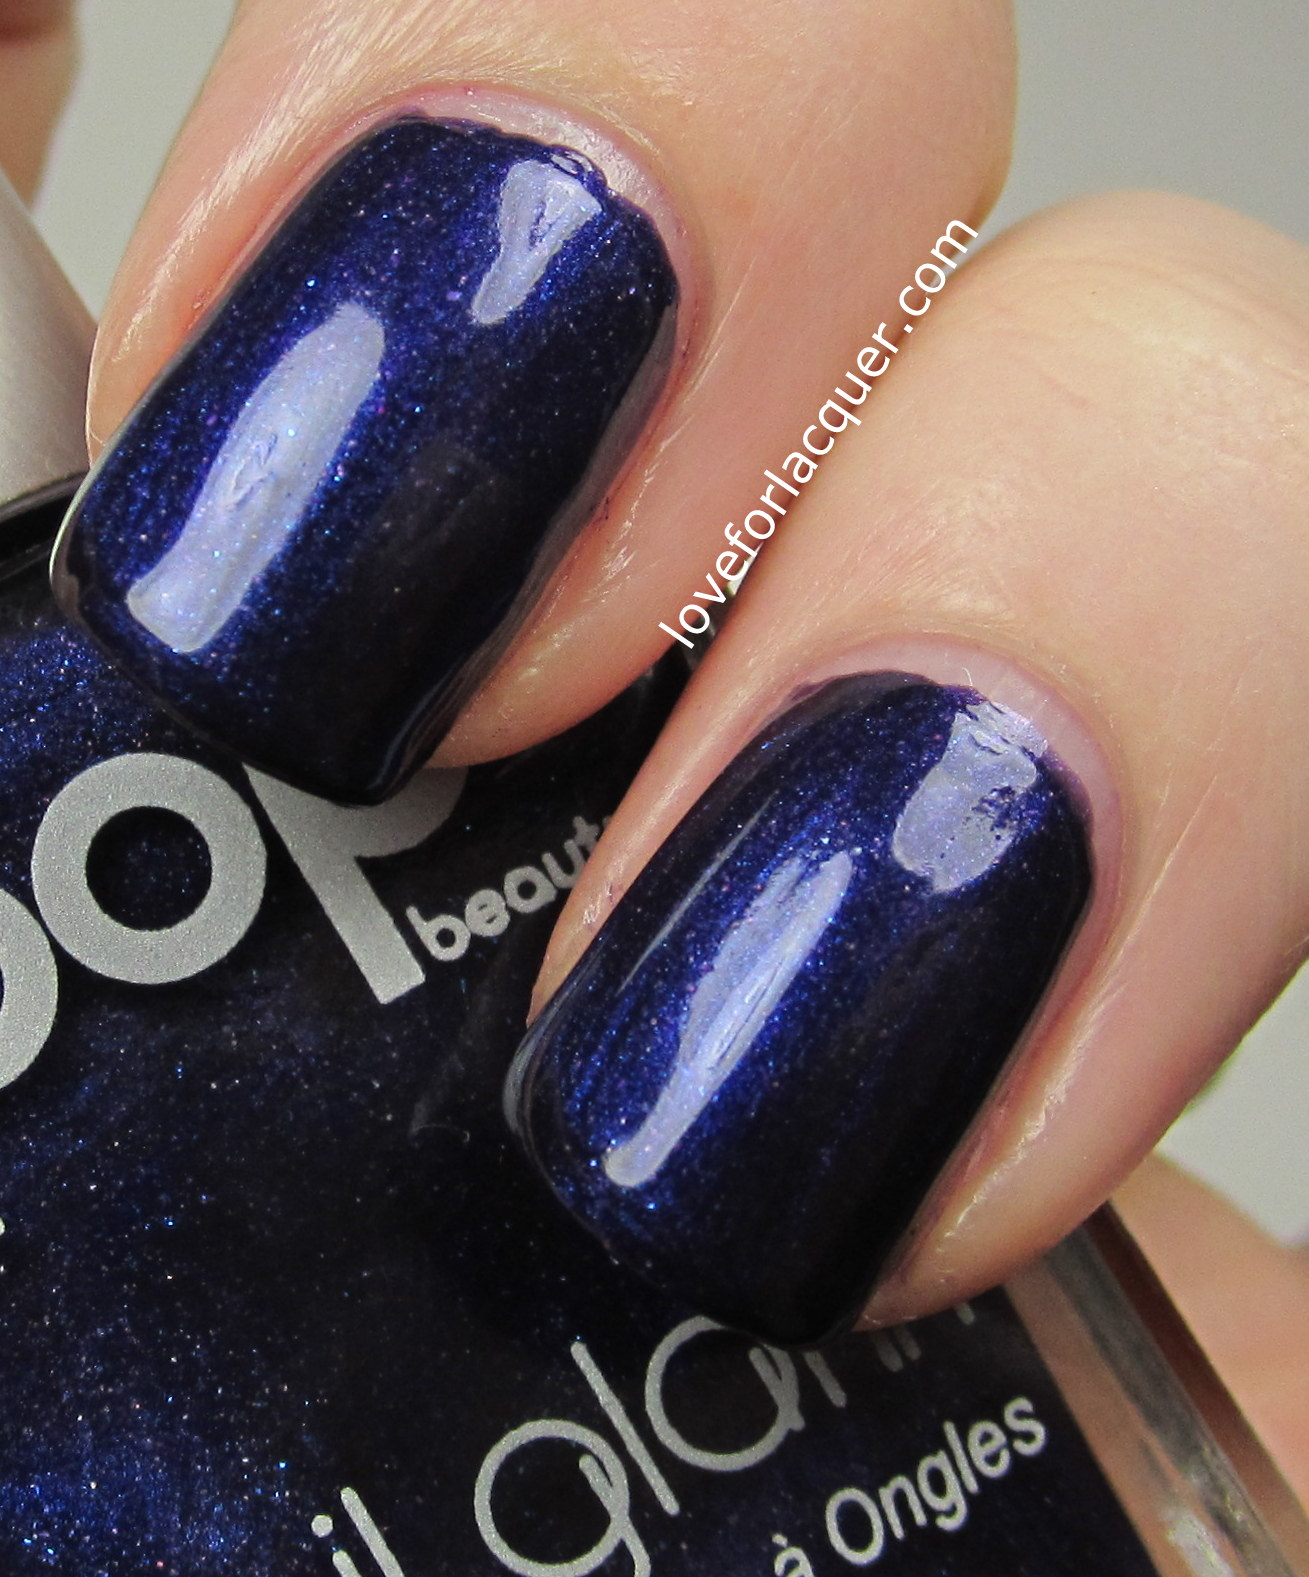 POP Beauty Nail Glam Swatches! - Love for Lacquer